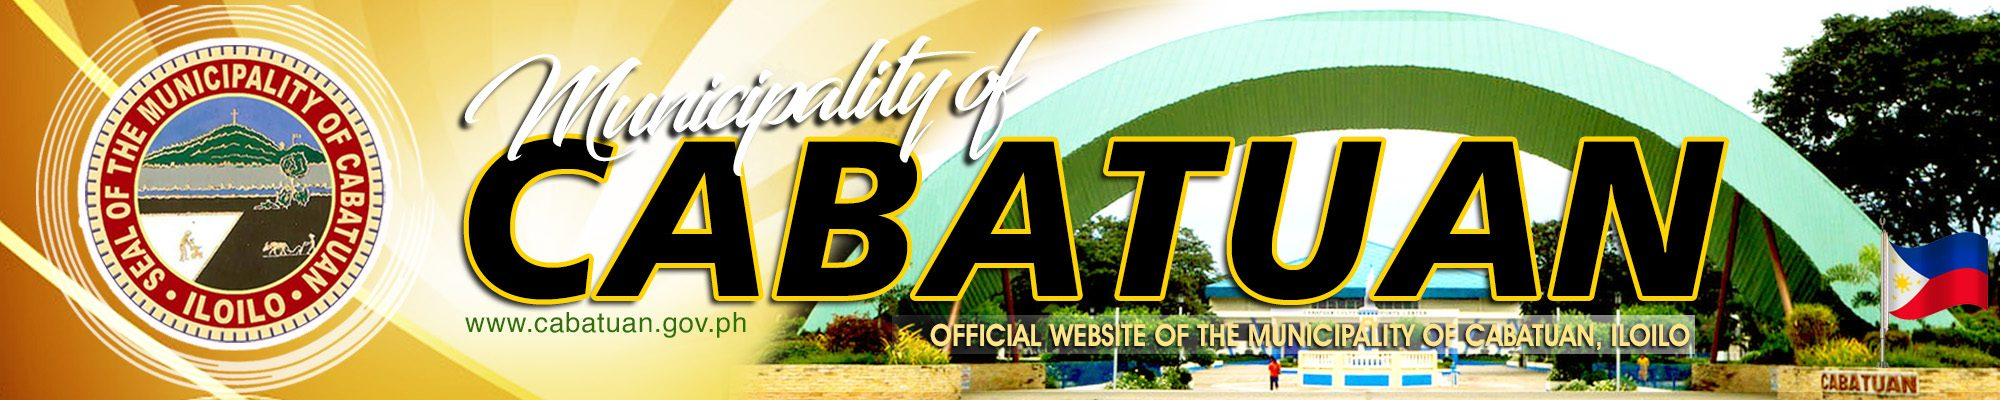 Municipality of Cabatuan